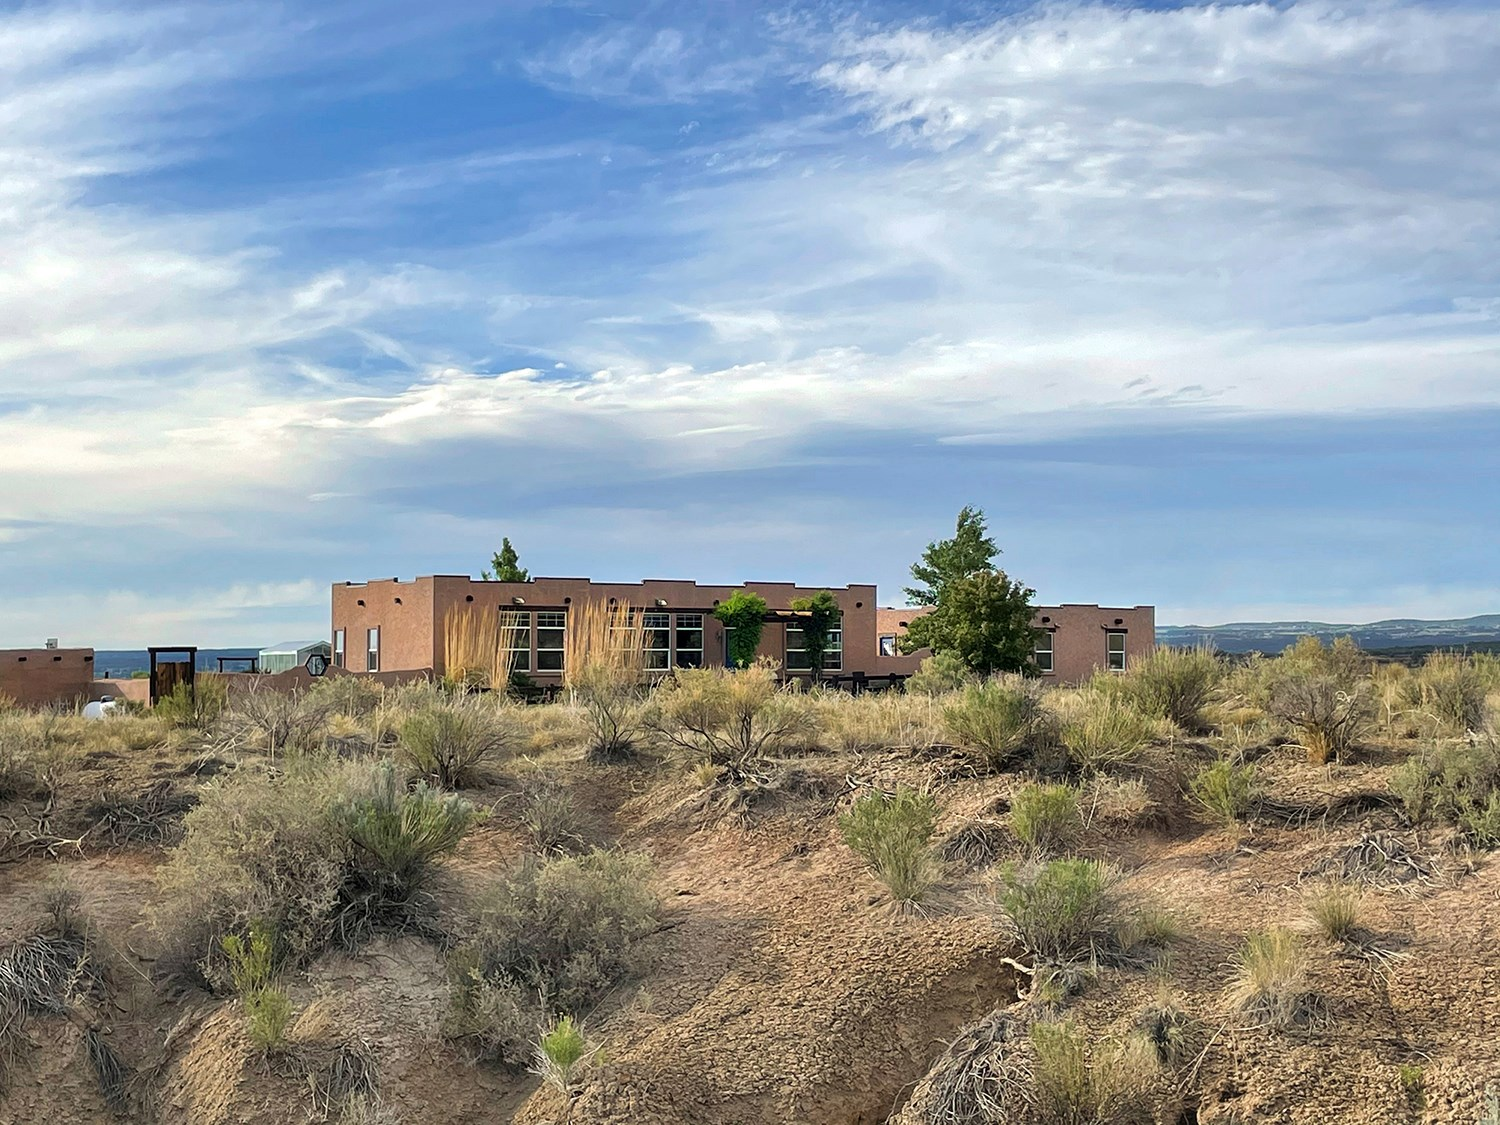 Country Home For Sale in Cortez, CO nearby Mesa Verde!